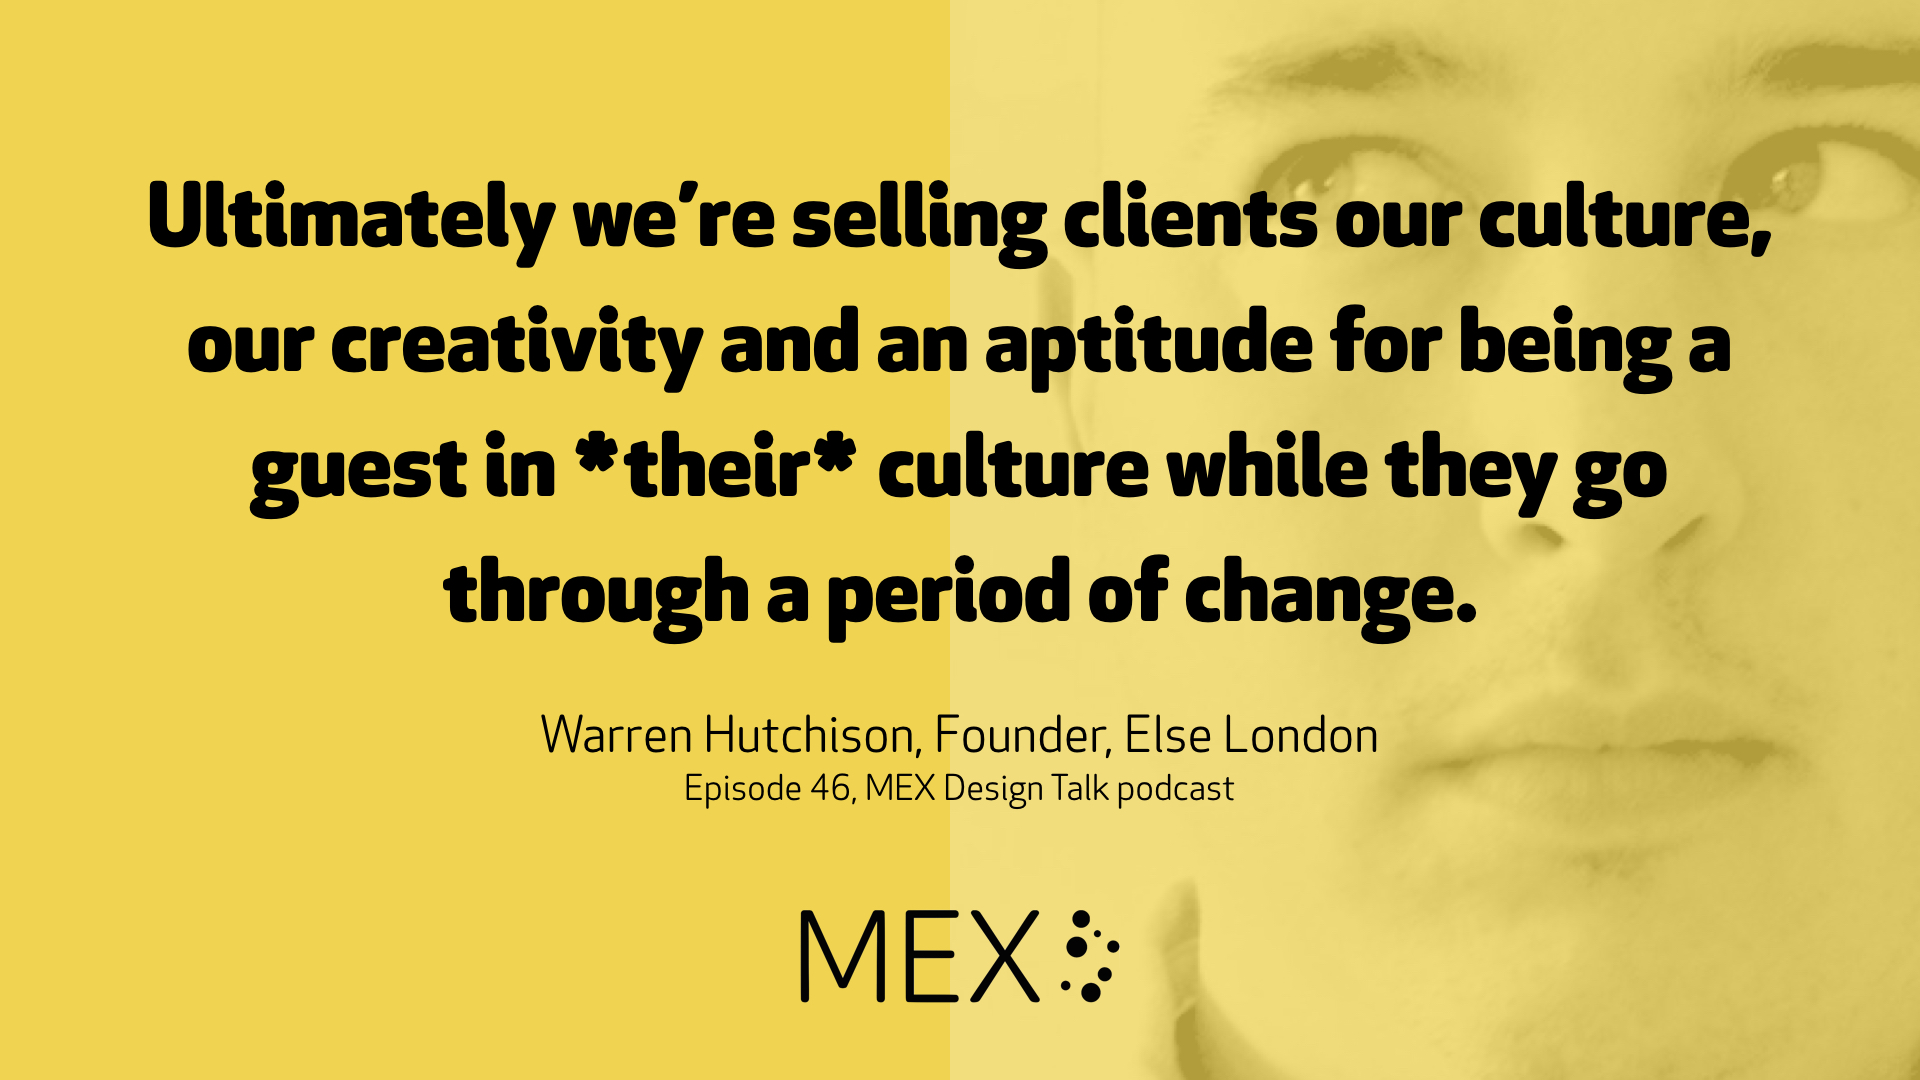 Ultimately we're selling clients our culture, our creativity and an aptitude for being a guest in *their* culture while they go through a period of change.   Warren Hutchison, Founder, Else London Episode 46, MEX Design Talk podcast